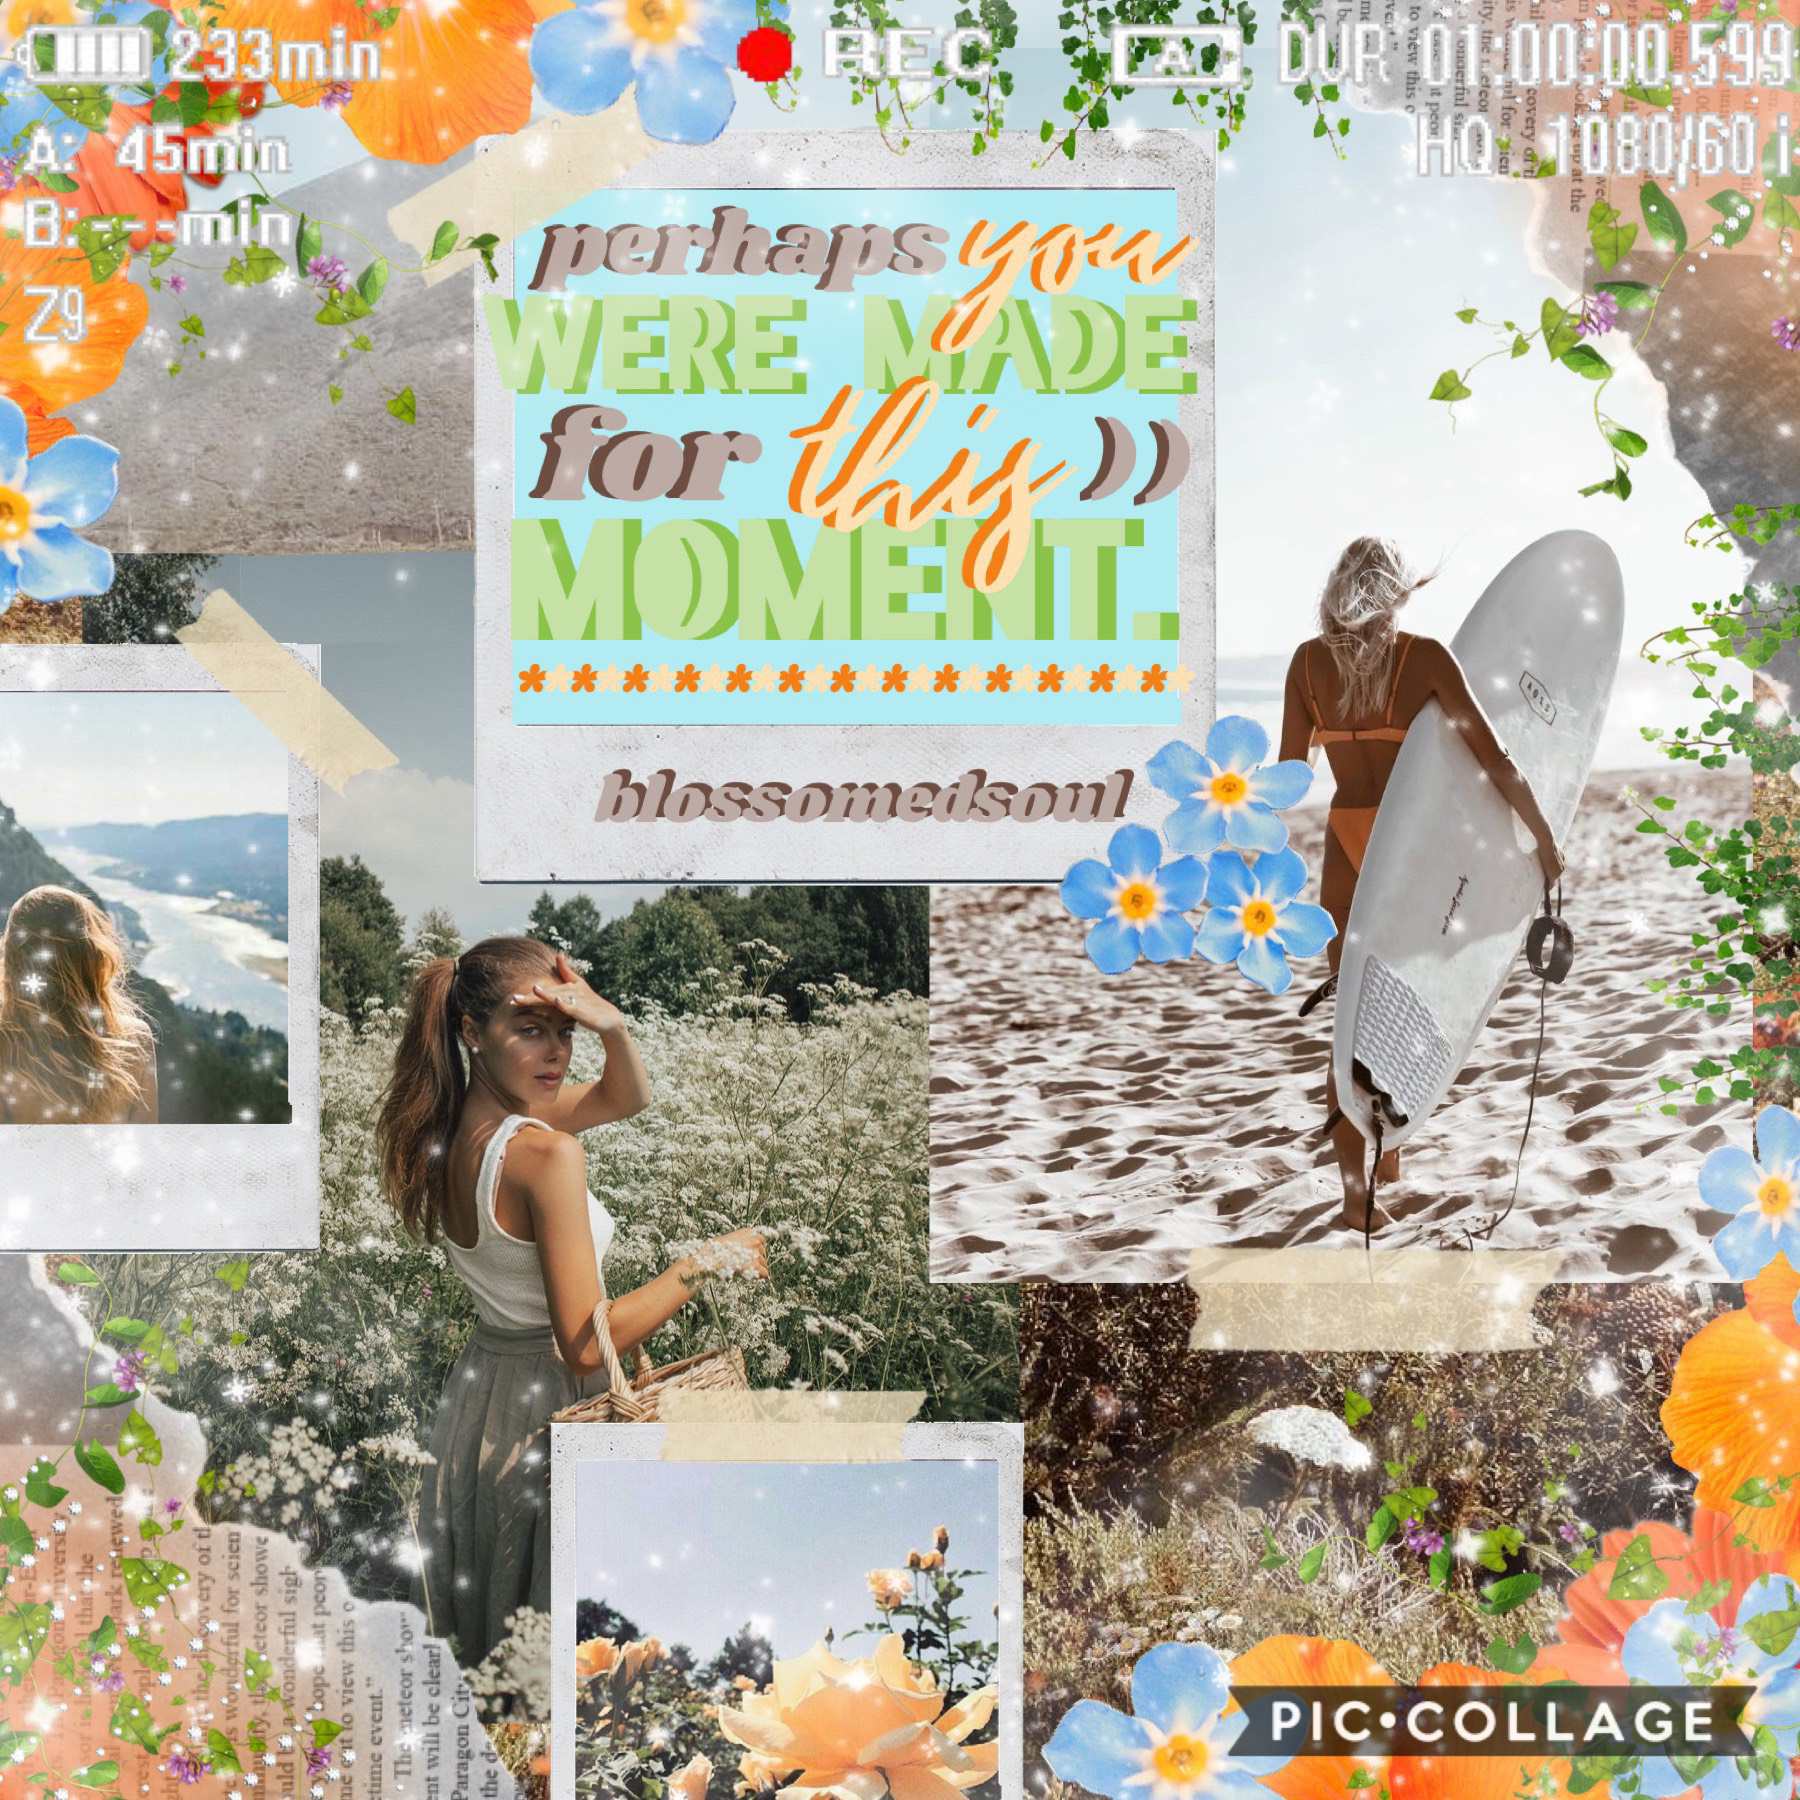 [ t a p ]  new post! haha i feel like i haven't made a collage in forever 😆🌻🌿 it's mostly been collabs! i'm trying to make each of my collages fit a different color theme so that it looks more put together 💘 qotd: is it warm in your area? aotd: yes! it fe